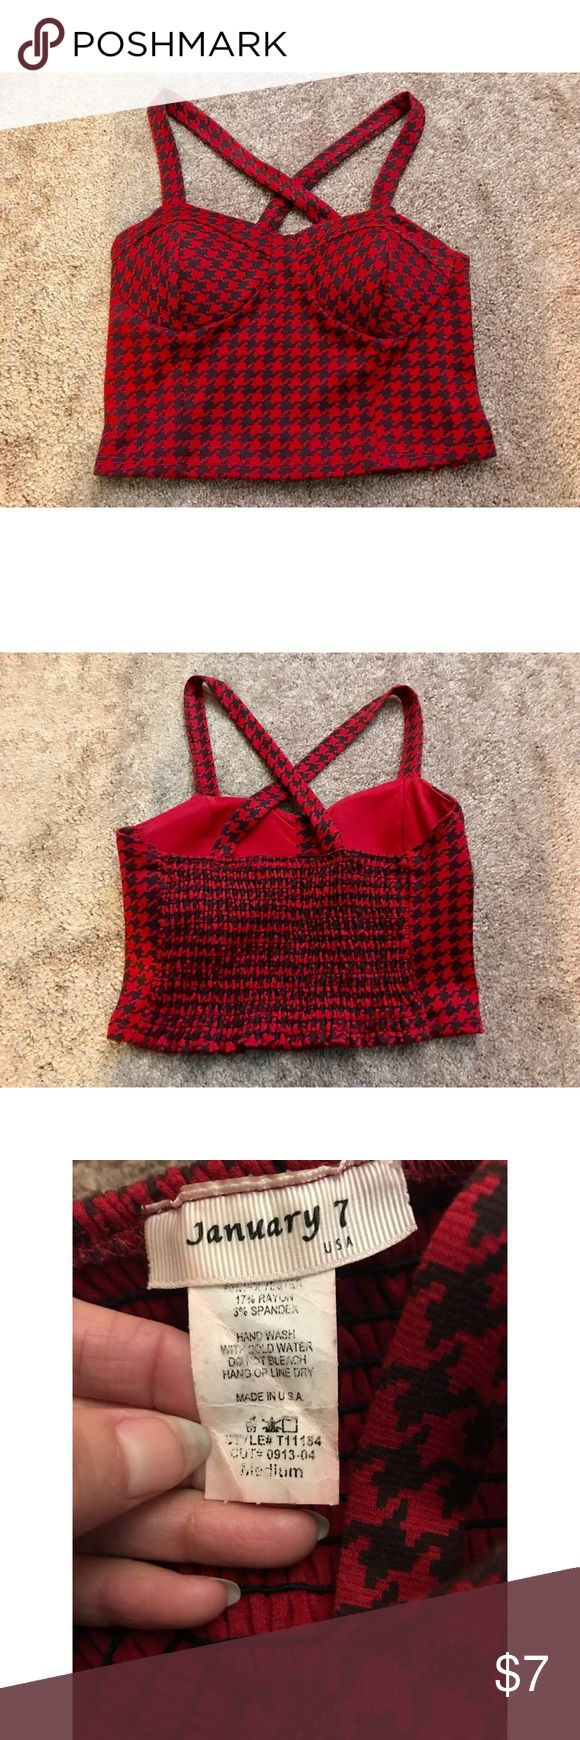 Sexy Red & Black ladies crop top! Size Medium Sexy Red & Black ladies crop top! Excellent condition. Goes great with high waisted skirts, shorts, jeans, leggings and more!   Size: Medium  Made with 80% Polyester 17% Rayon 3% Spandex.   Bundle and save!! Tops Crop Tops